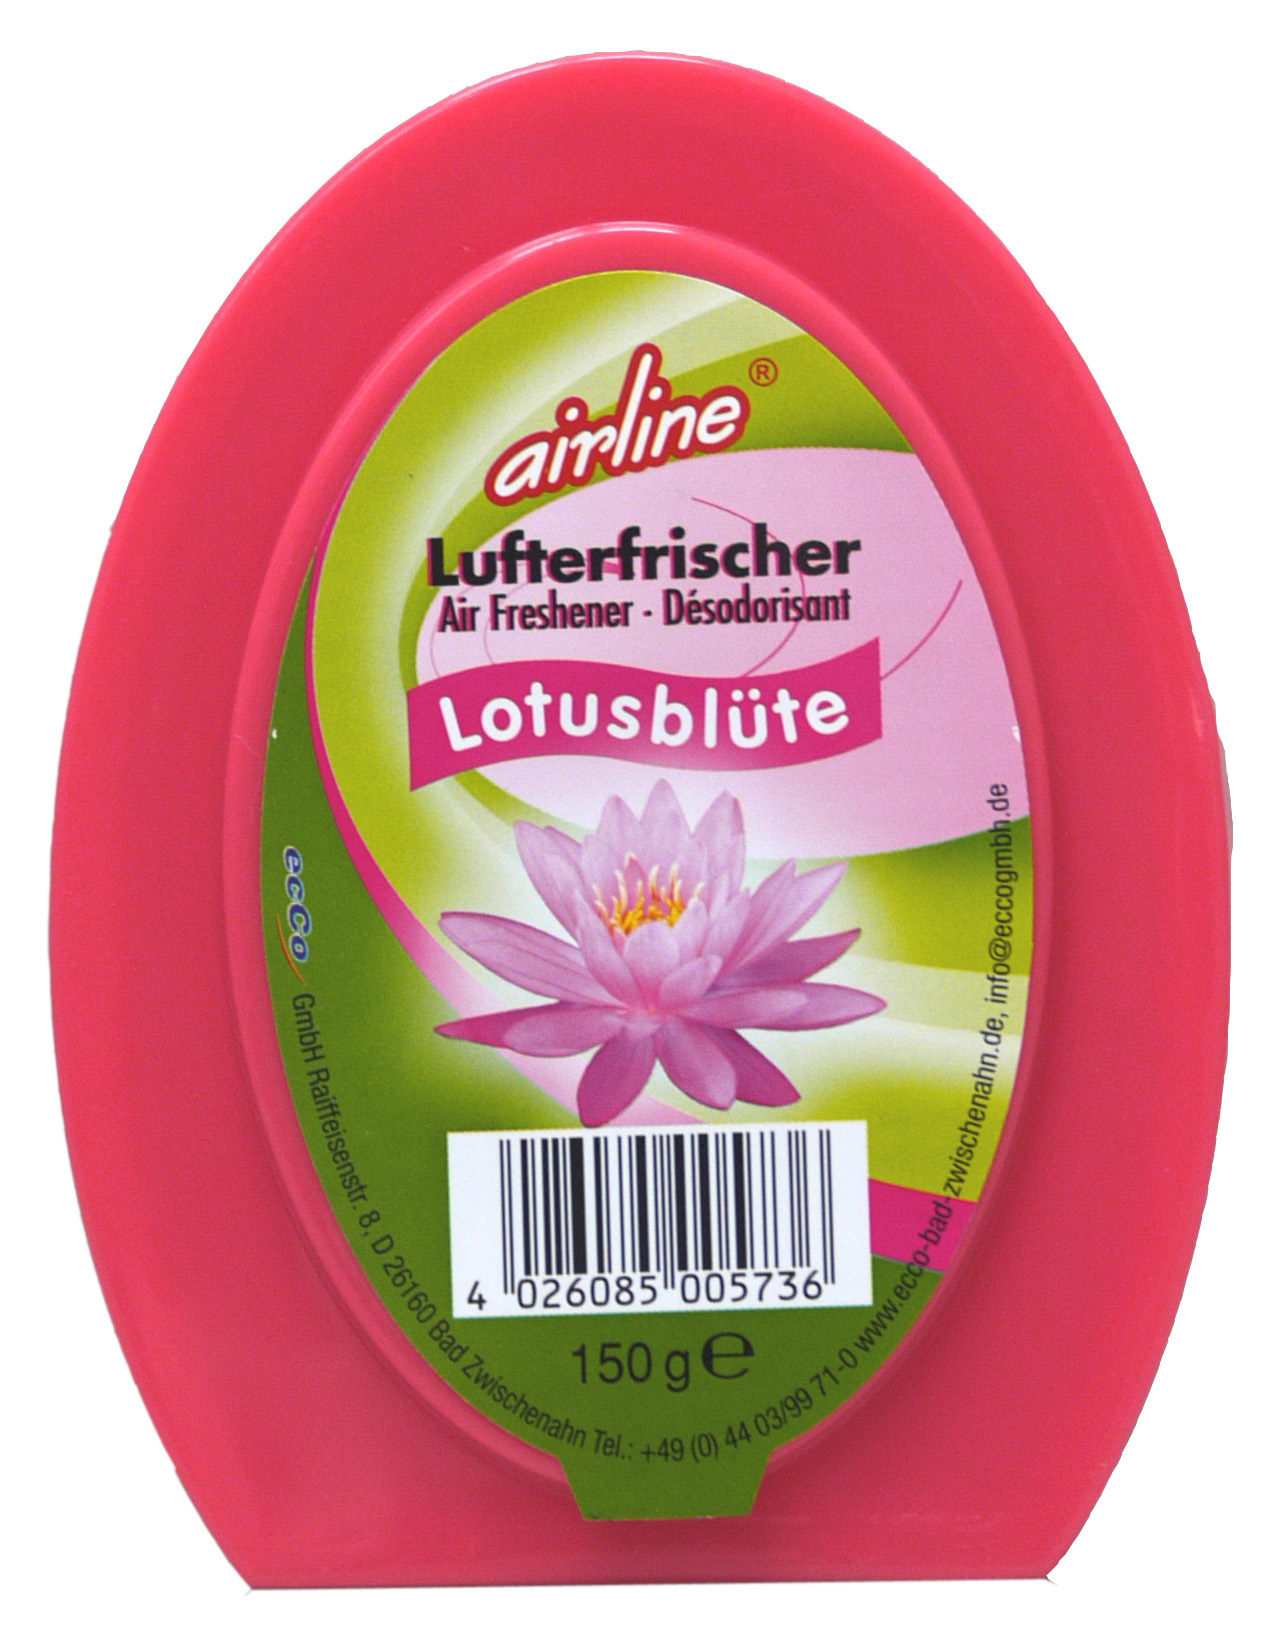 00573 - airline Duftgel 150 g - Lotusblüte